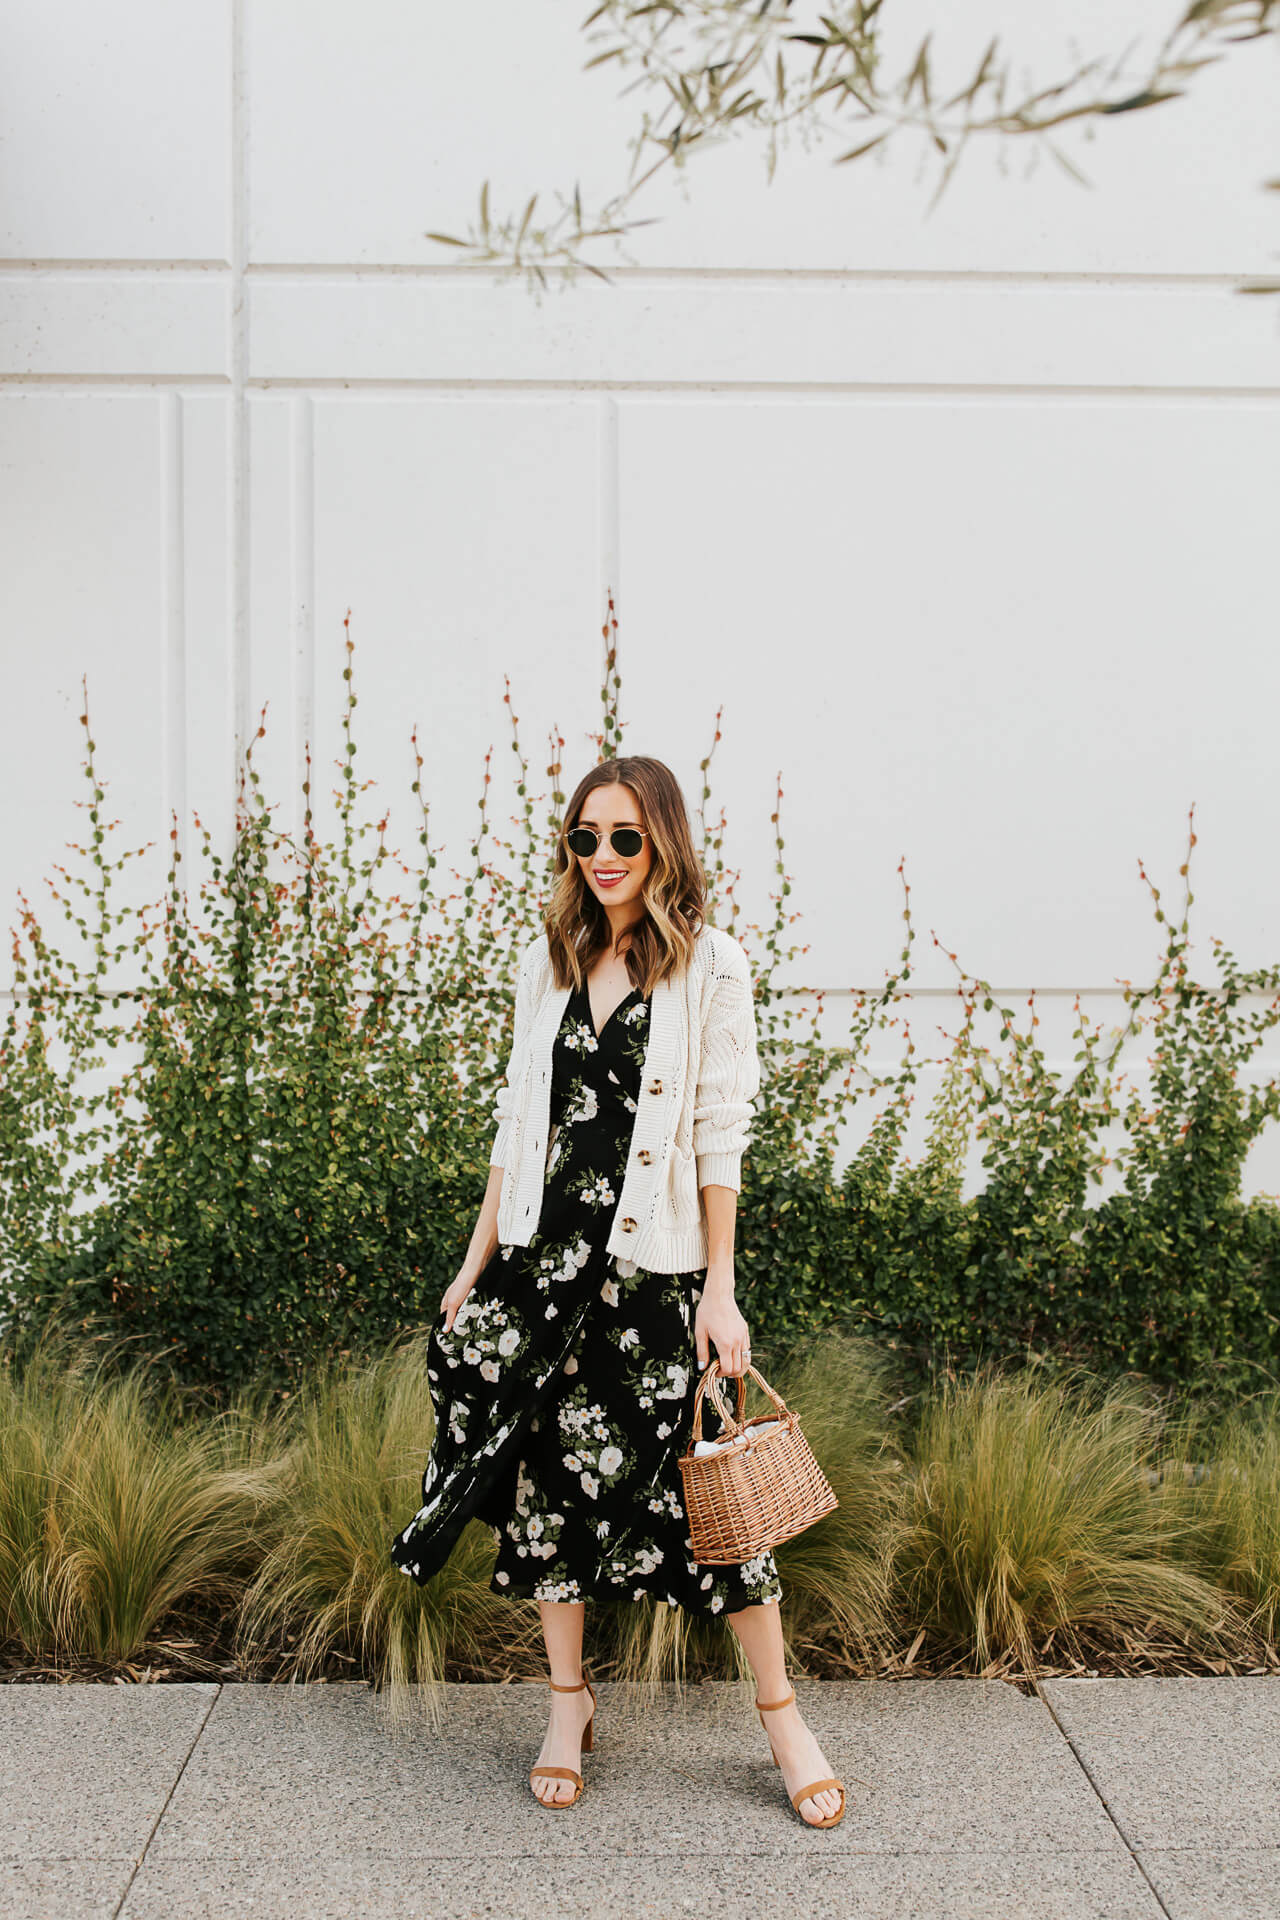 Floral wrap dresses are perfect for Spring! - M Loves M @marmar